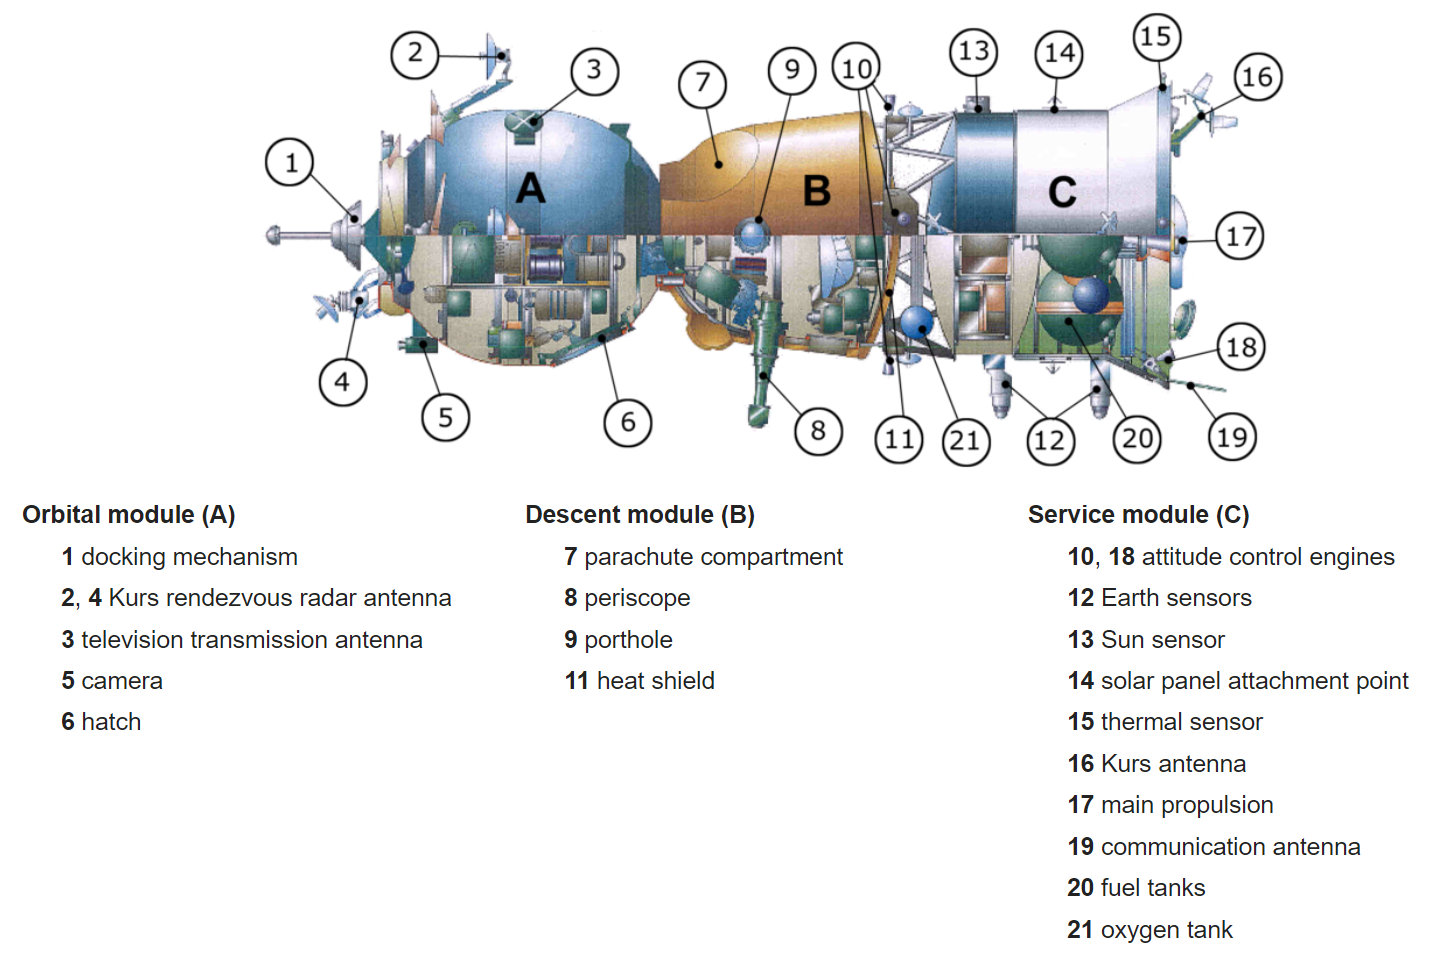 _images/spacecraft-soyuz-systems.png